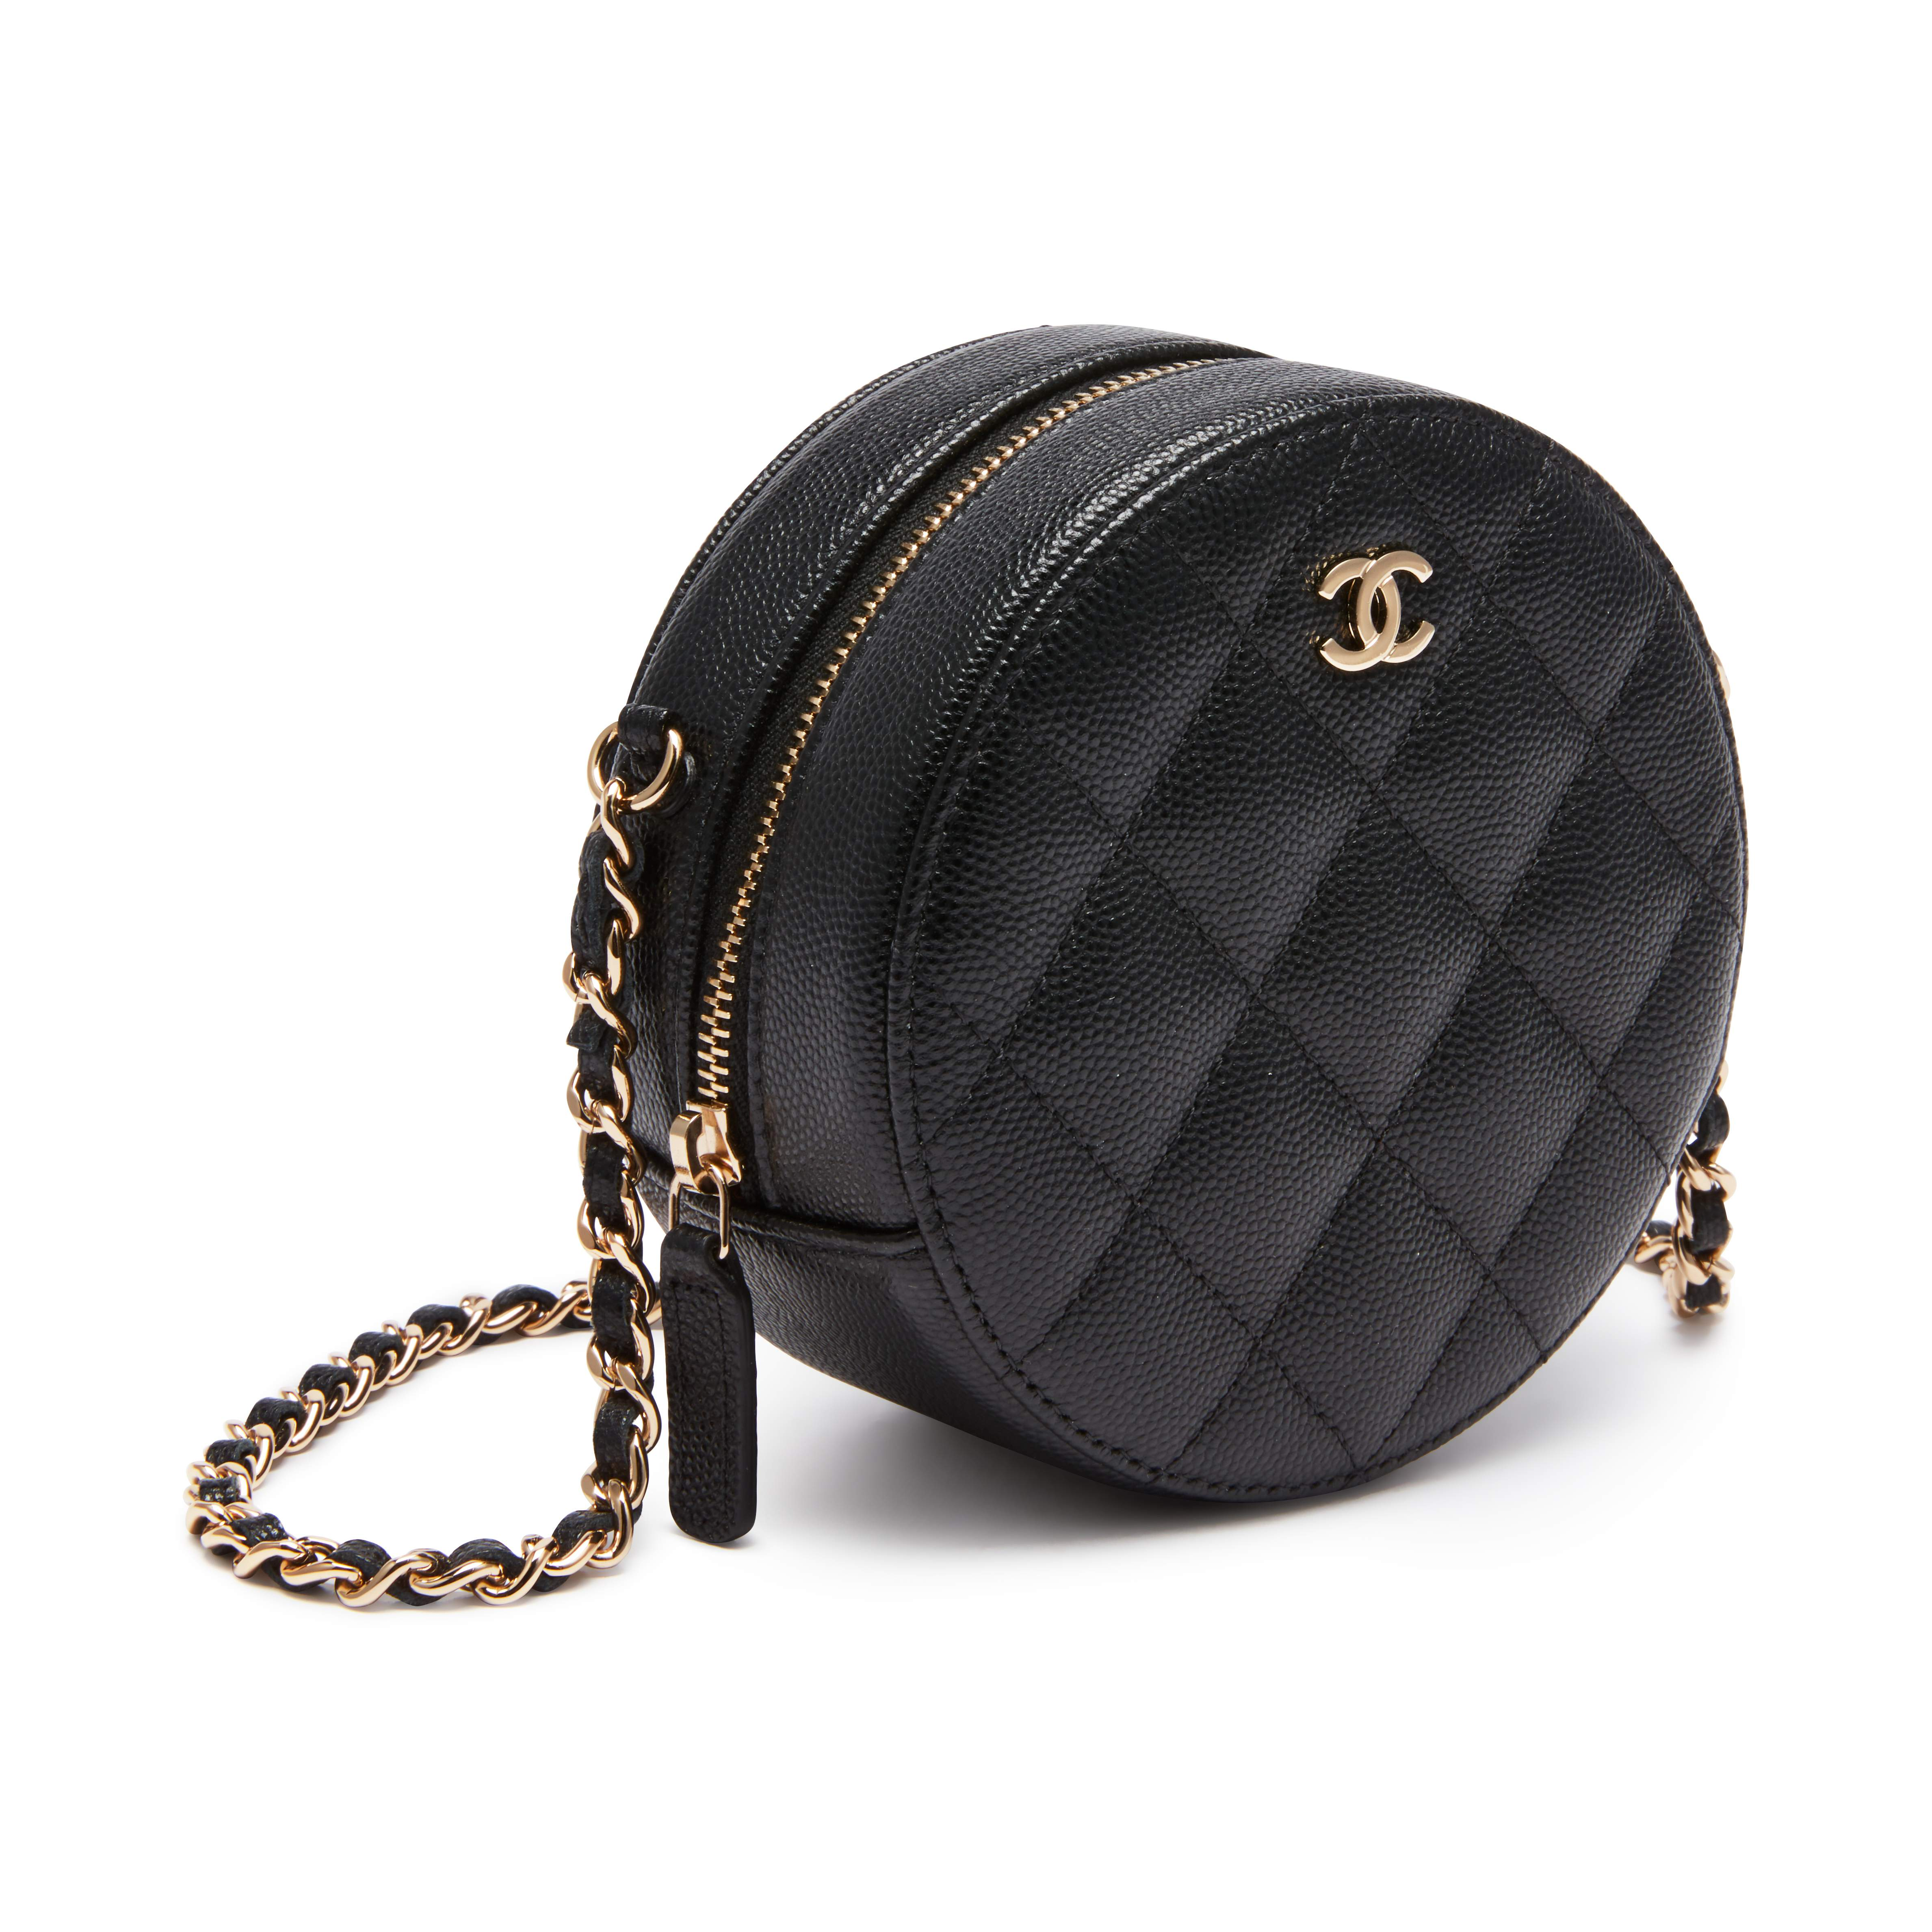 black-quilted-caviar-round-chain-clutch-goldtone-hardware-dcf5